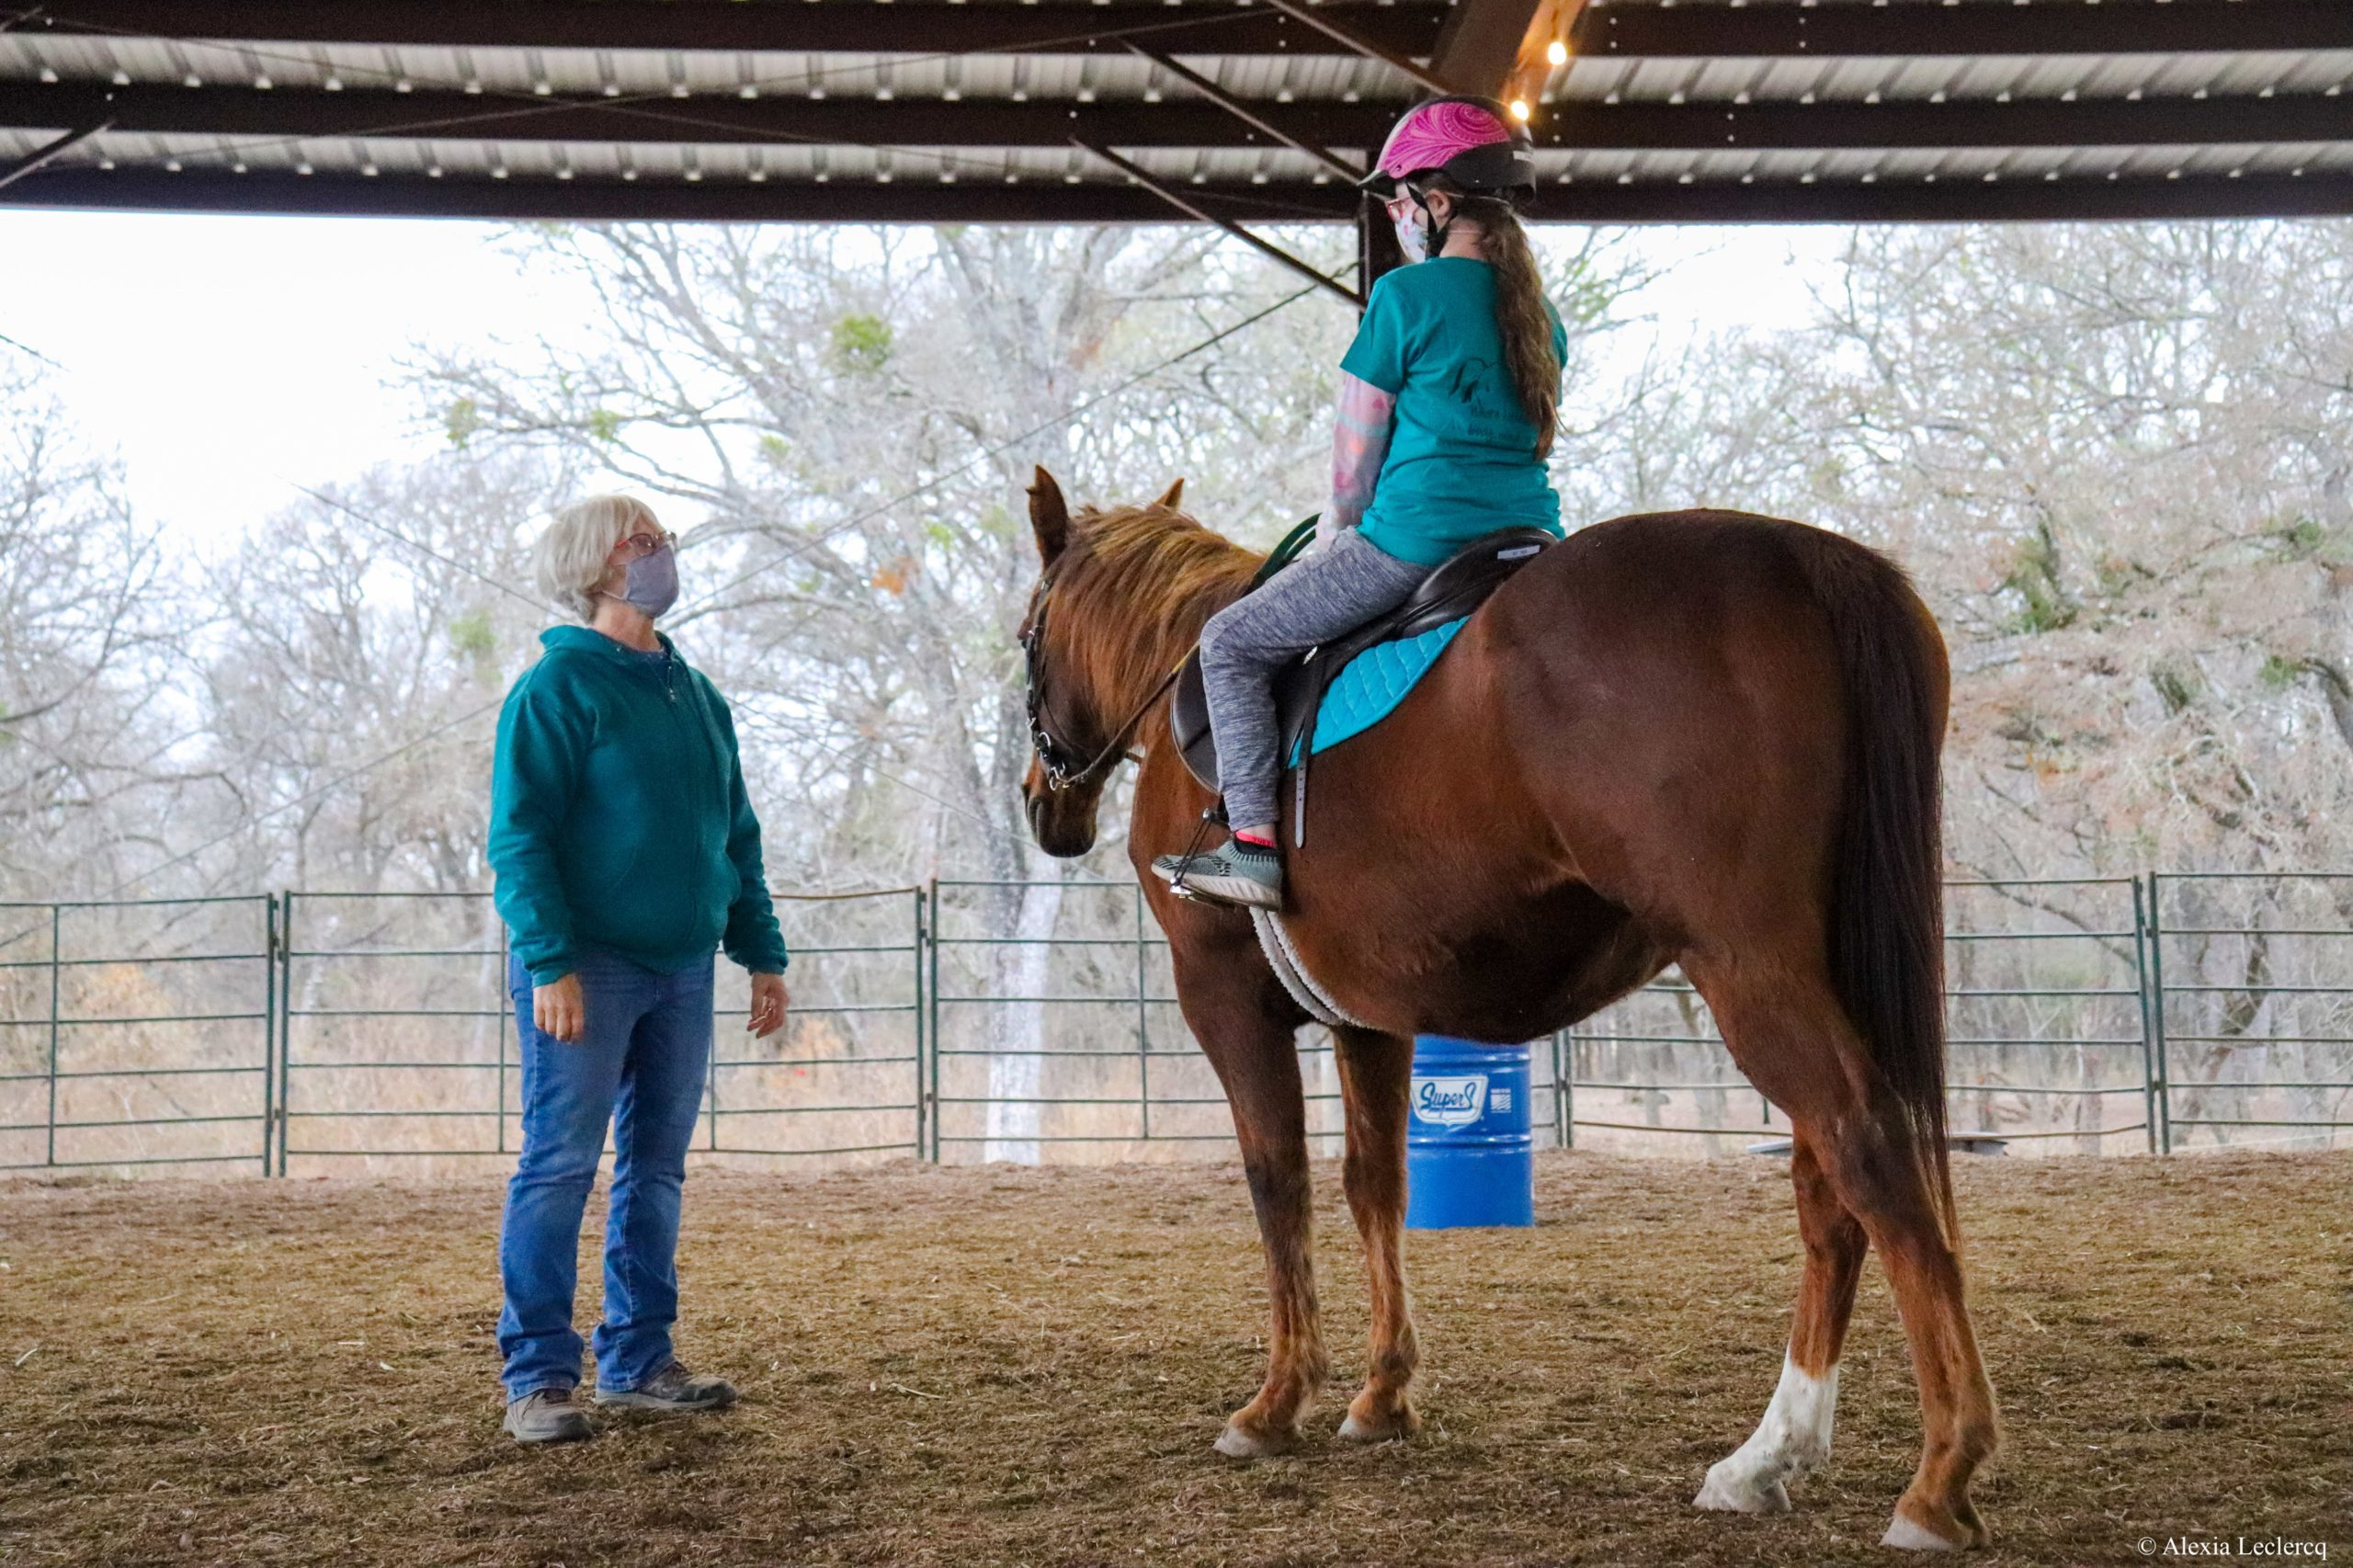 Instructor looking up at student on horseback.